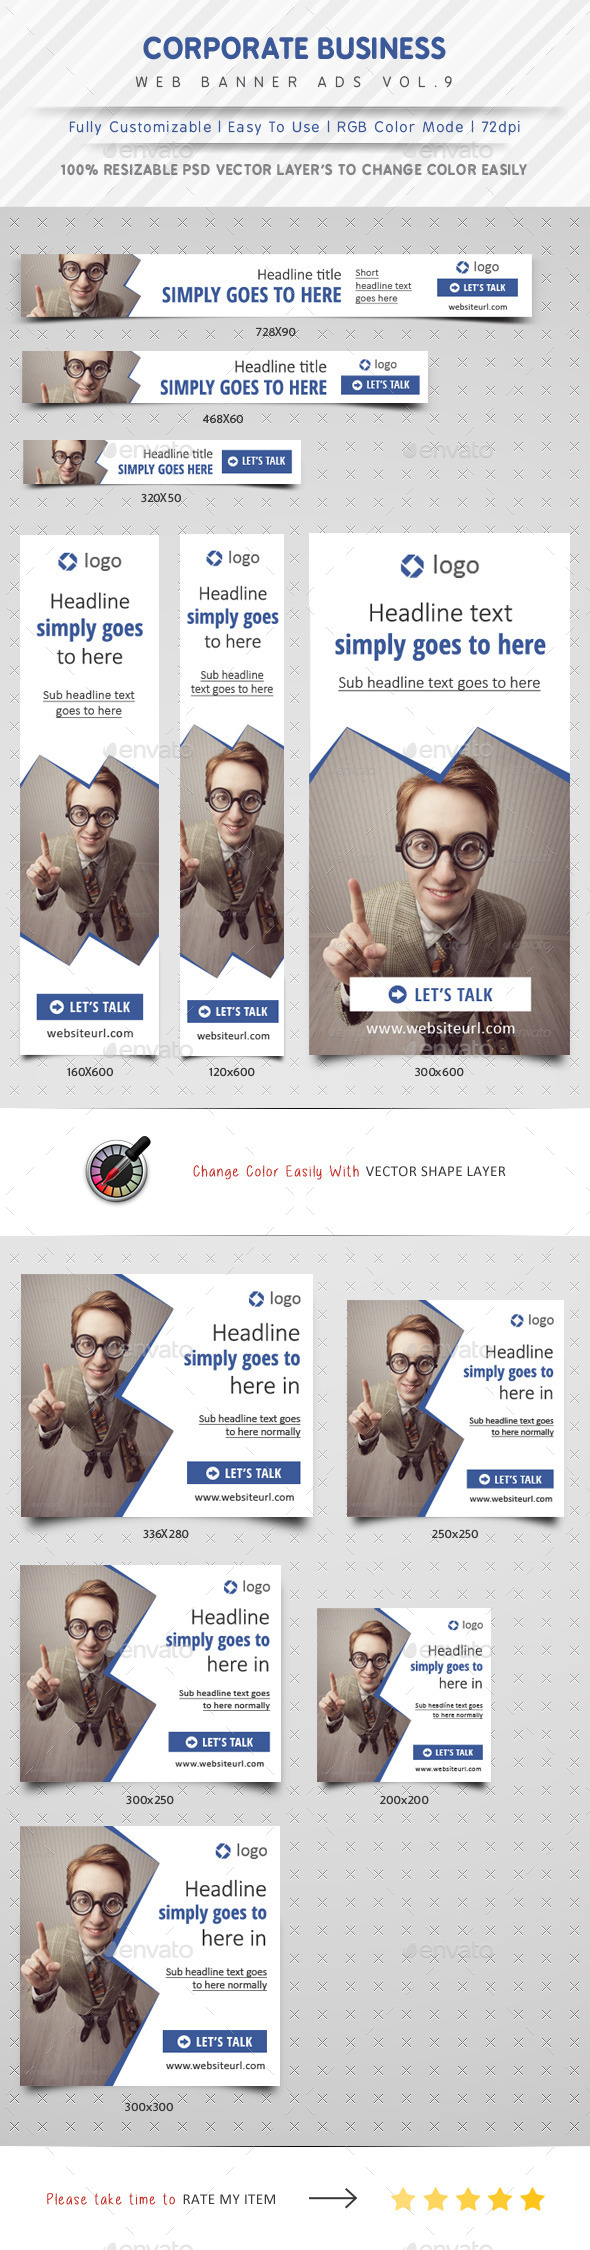 GraphicRiver Corporate Business Web Banner Ads Vol.9 11330685